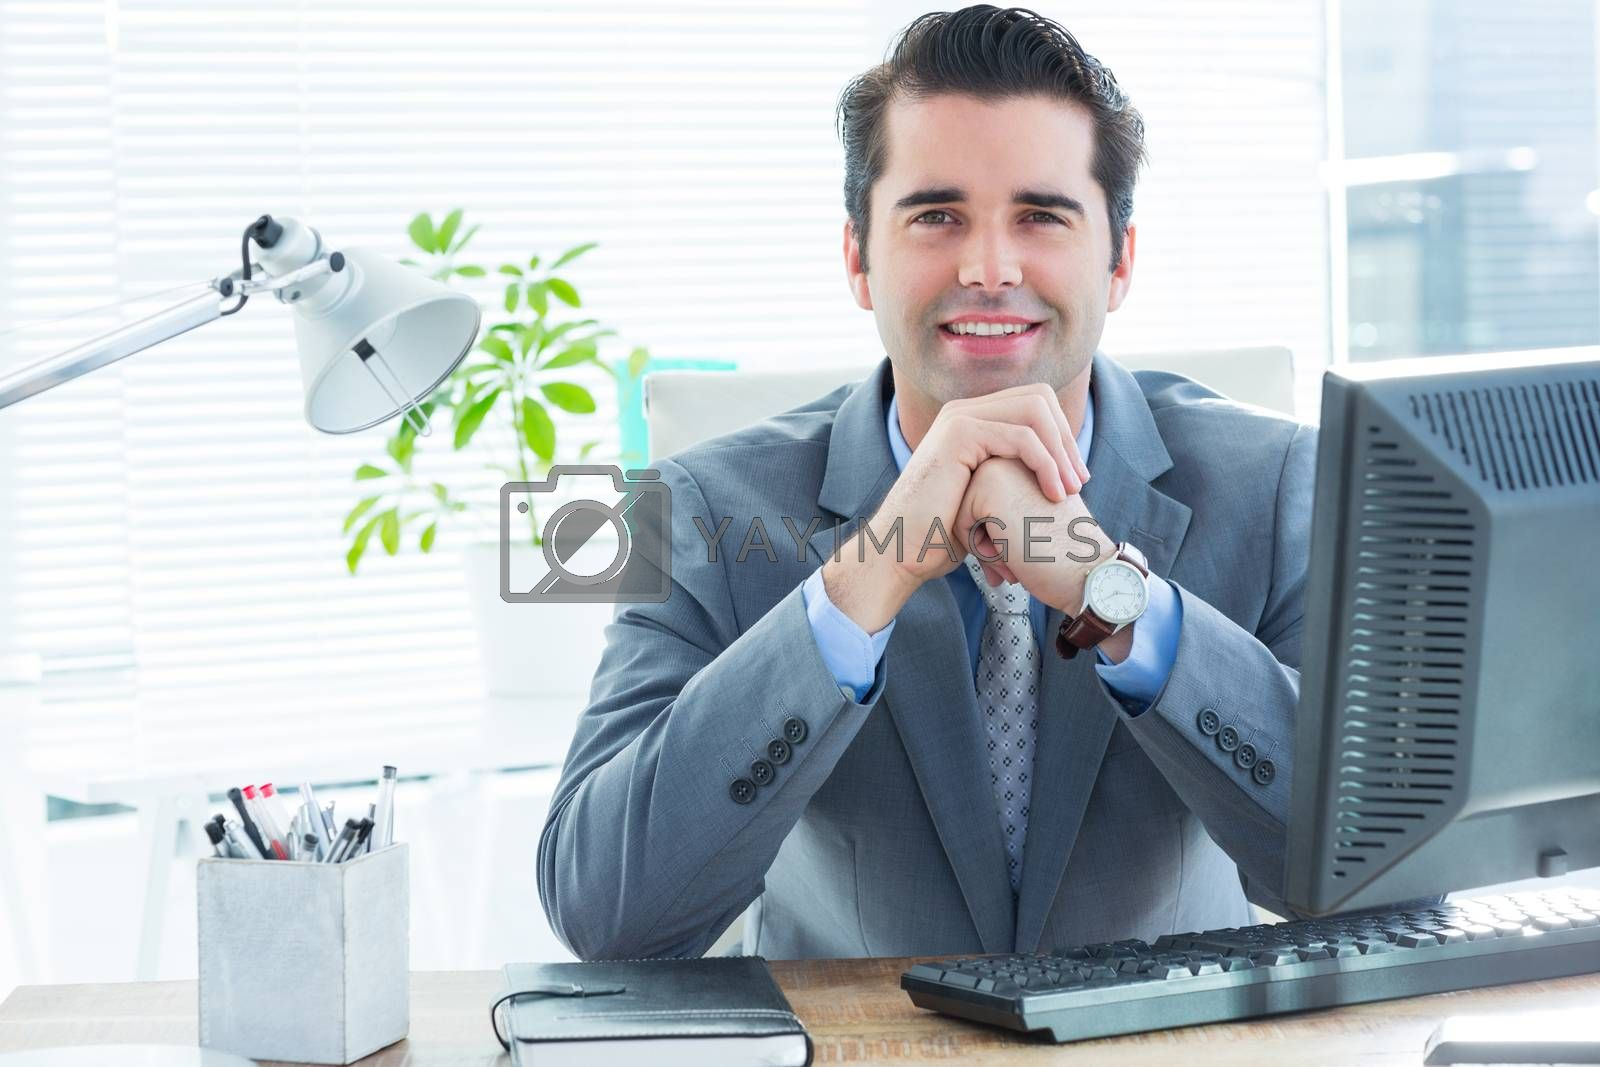 Royalty free image of Professional businessman looking at the camera by Wavebreakmedia